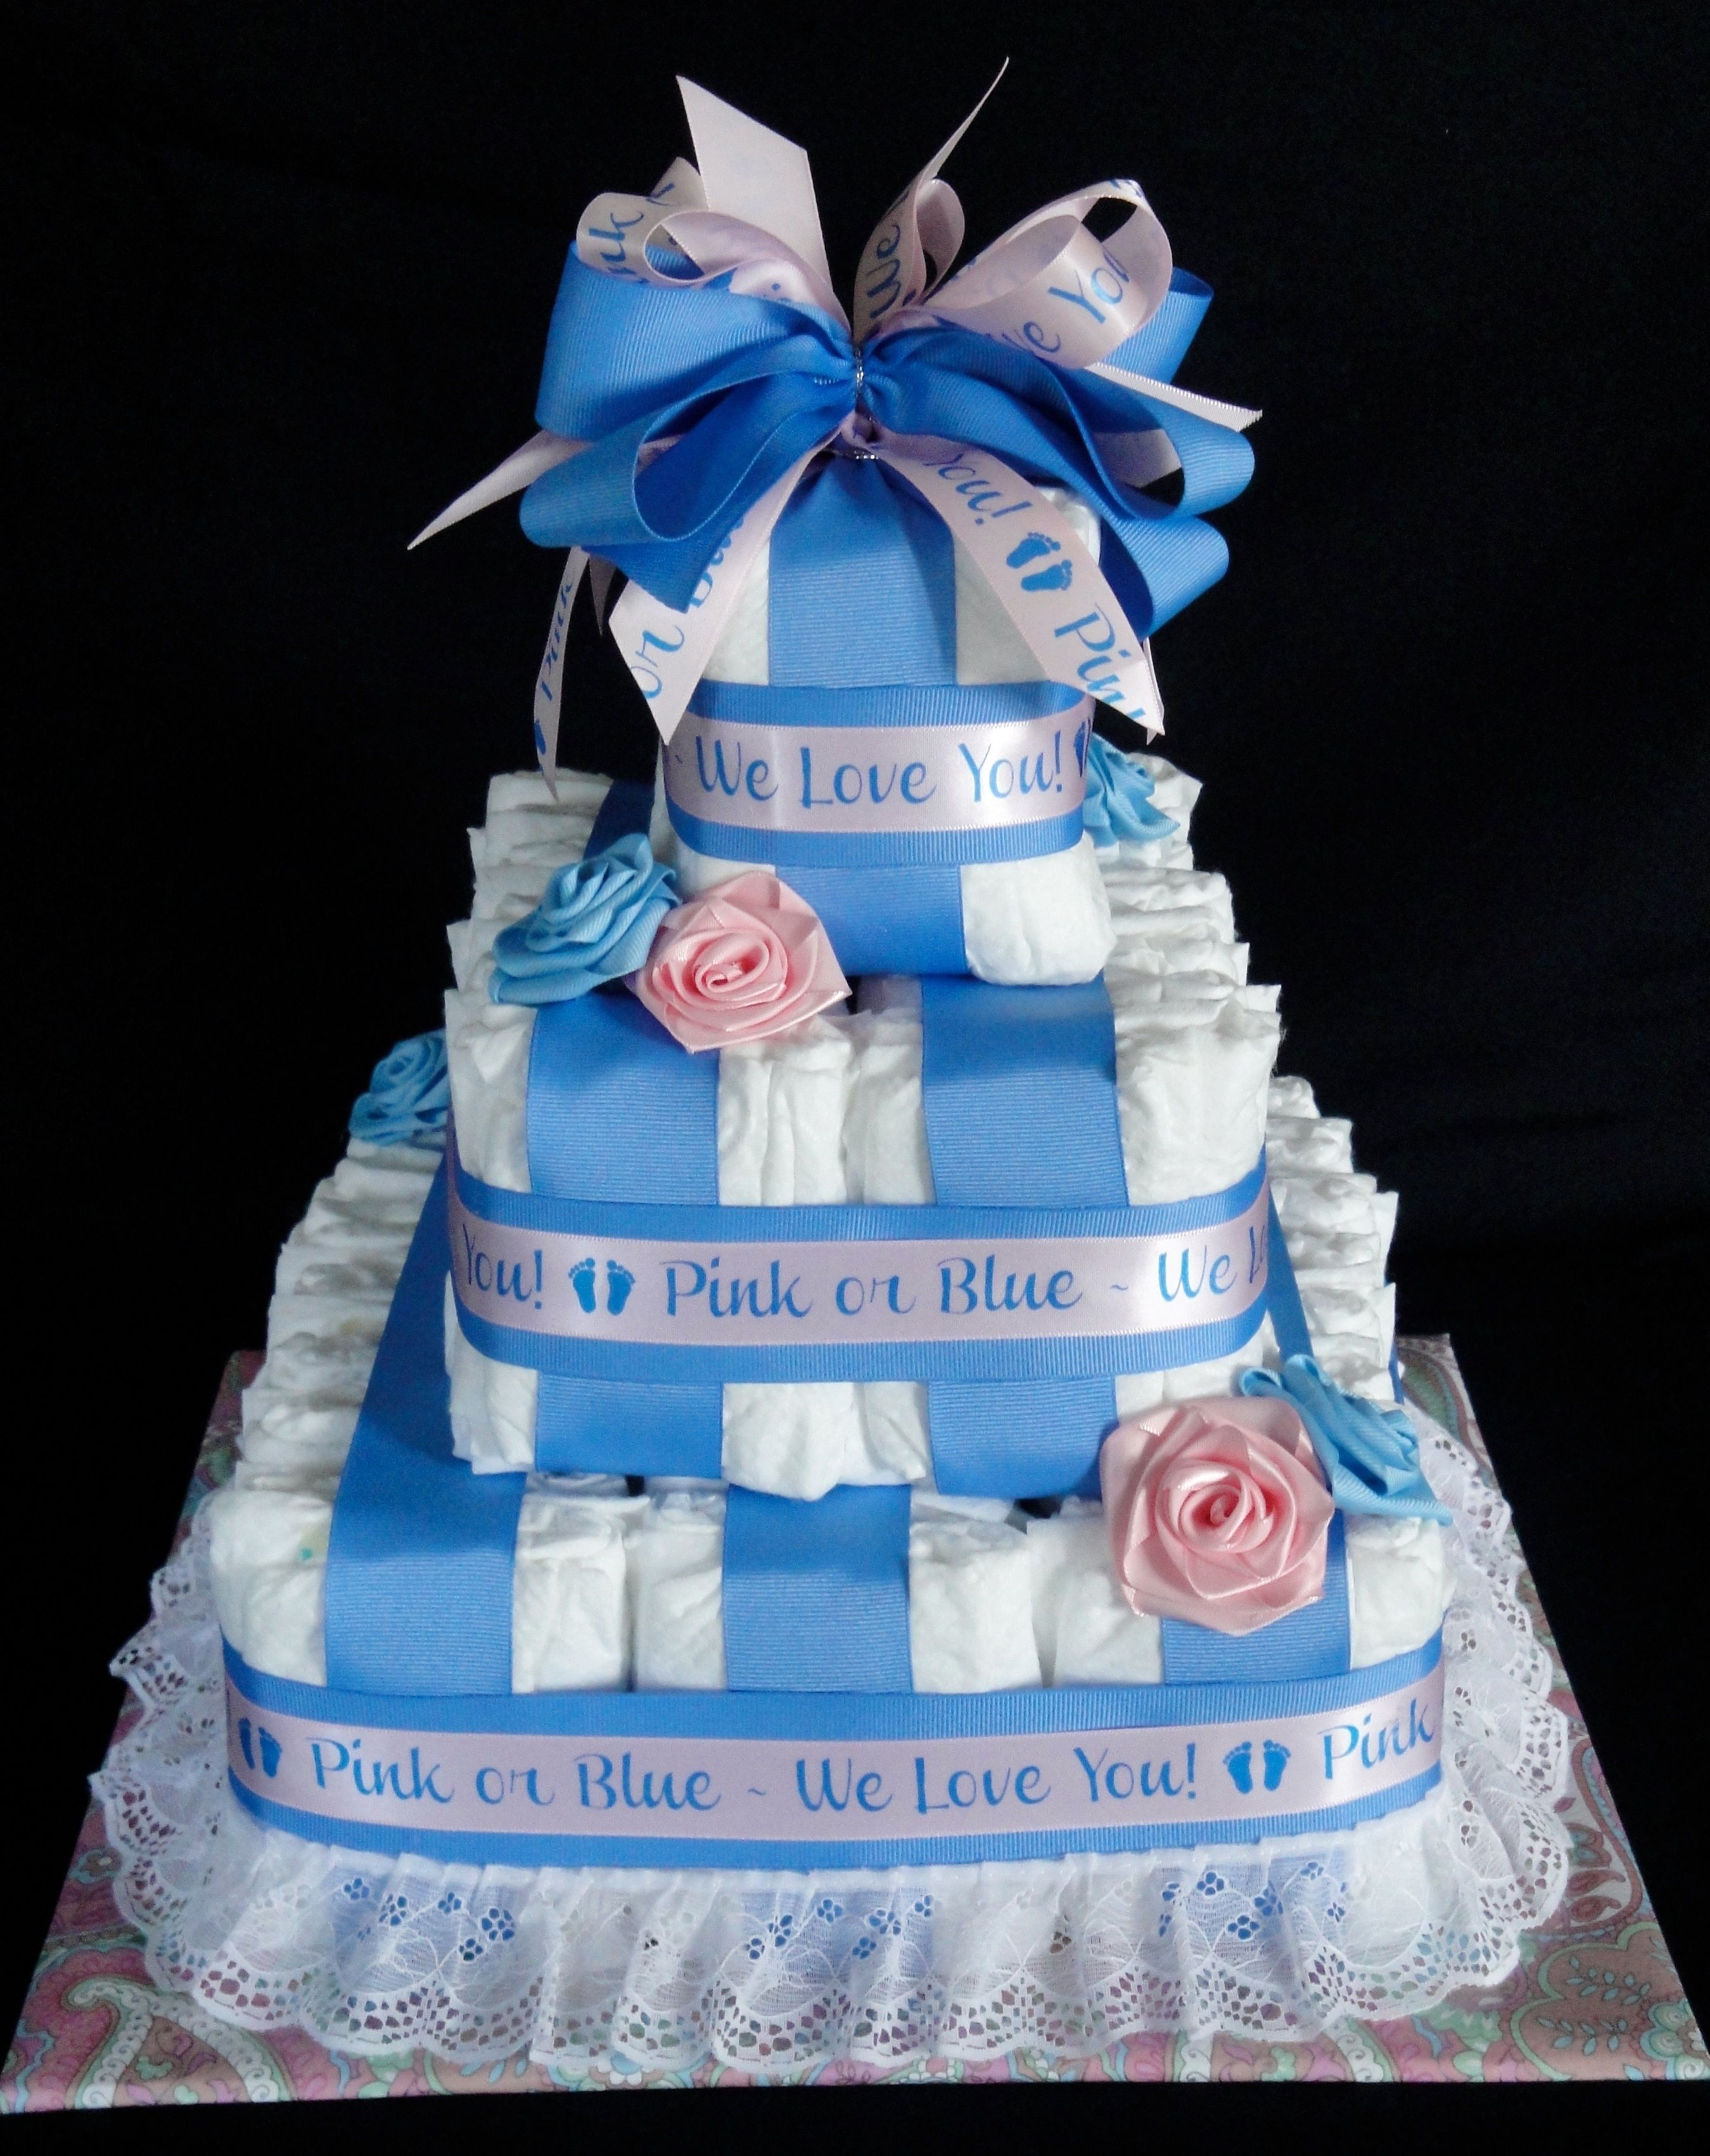 Diaper cake made for a gender reveal party. www.facebook.com/DiaperCakesbyDiana